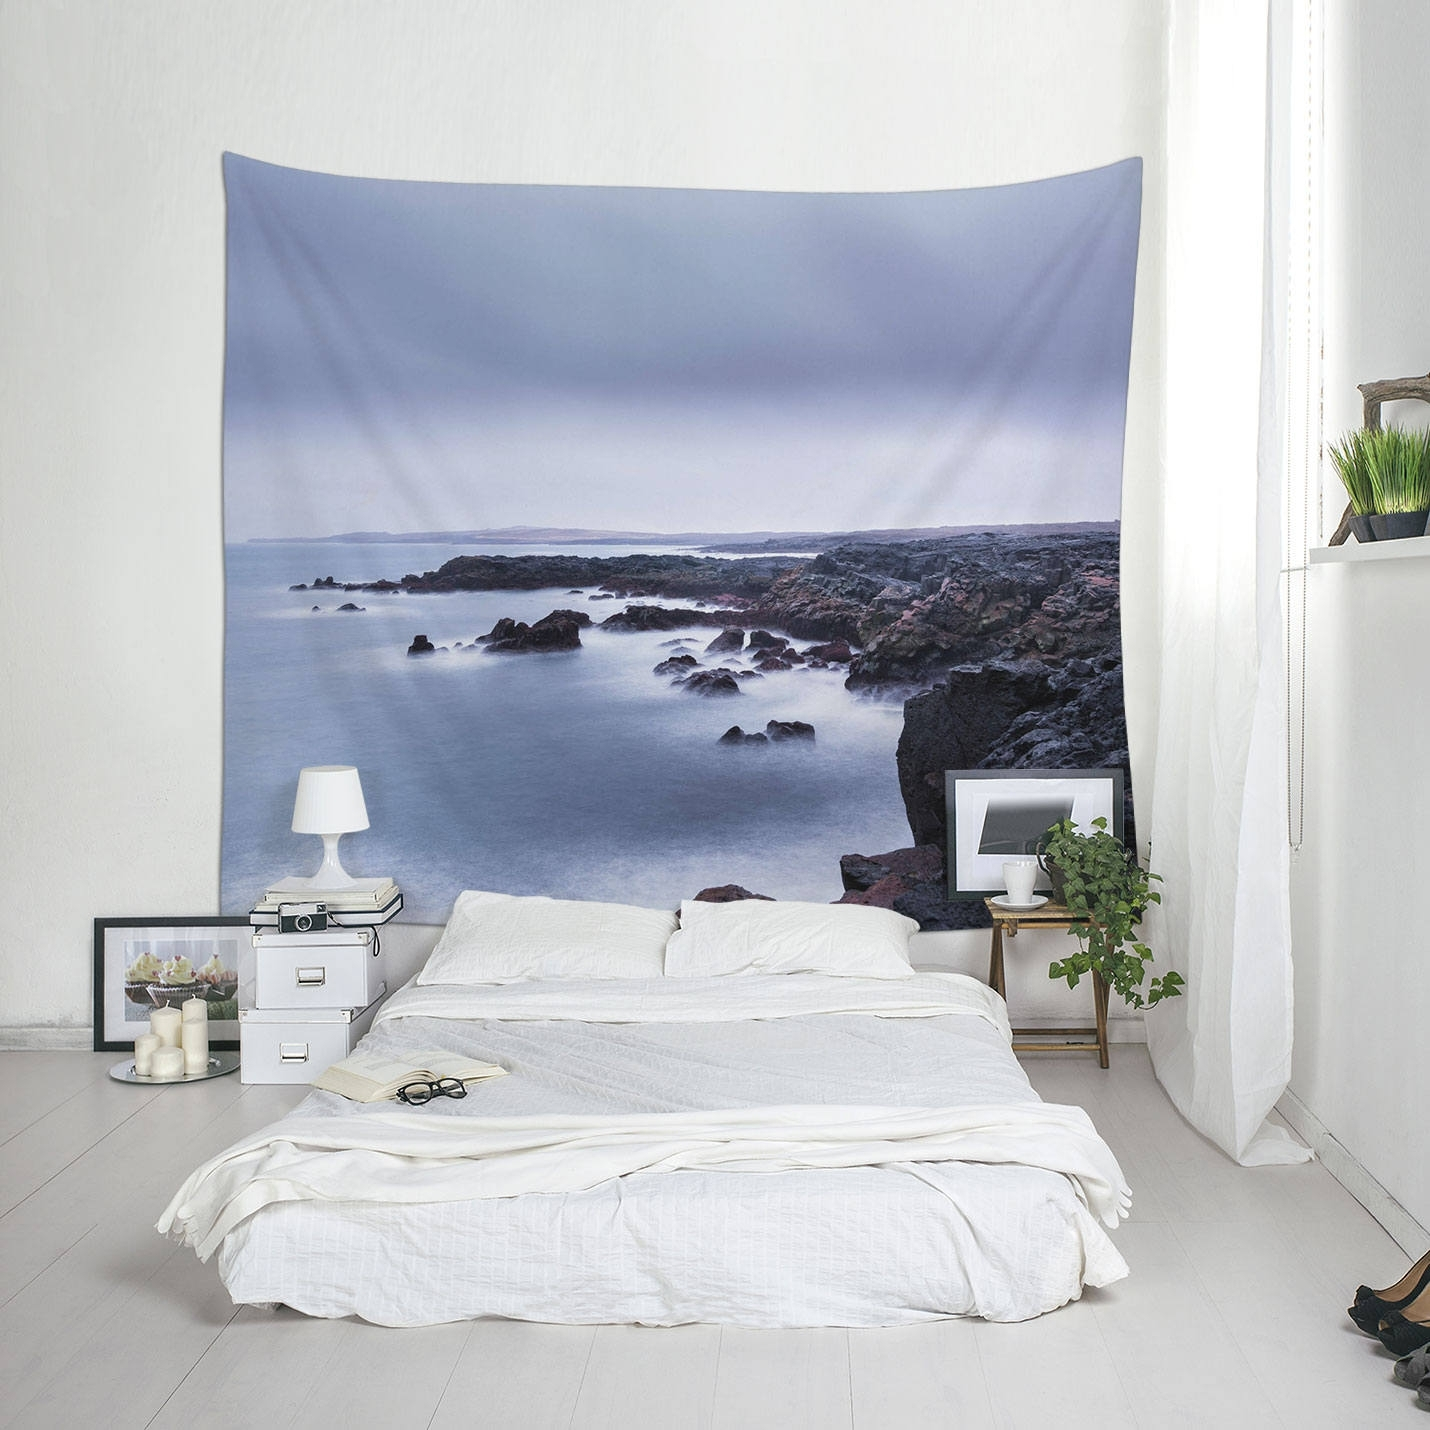 Coastal Tapestry, Iceland Coast, Landscape Wall Art, Fabric Pertaining To Recent Outdoor Fabric Wall Art (View 8 of 15)